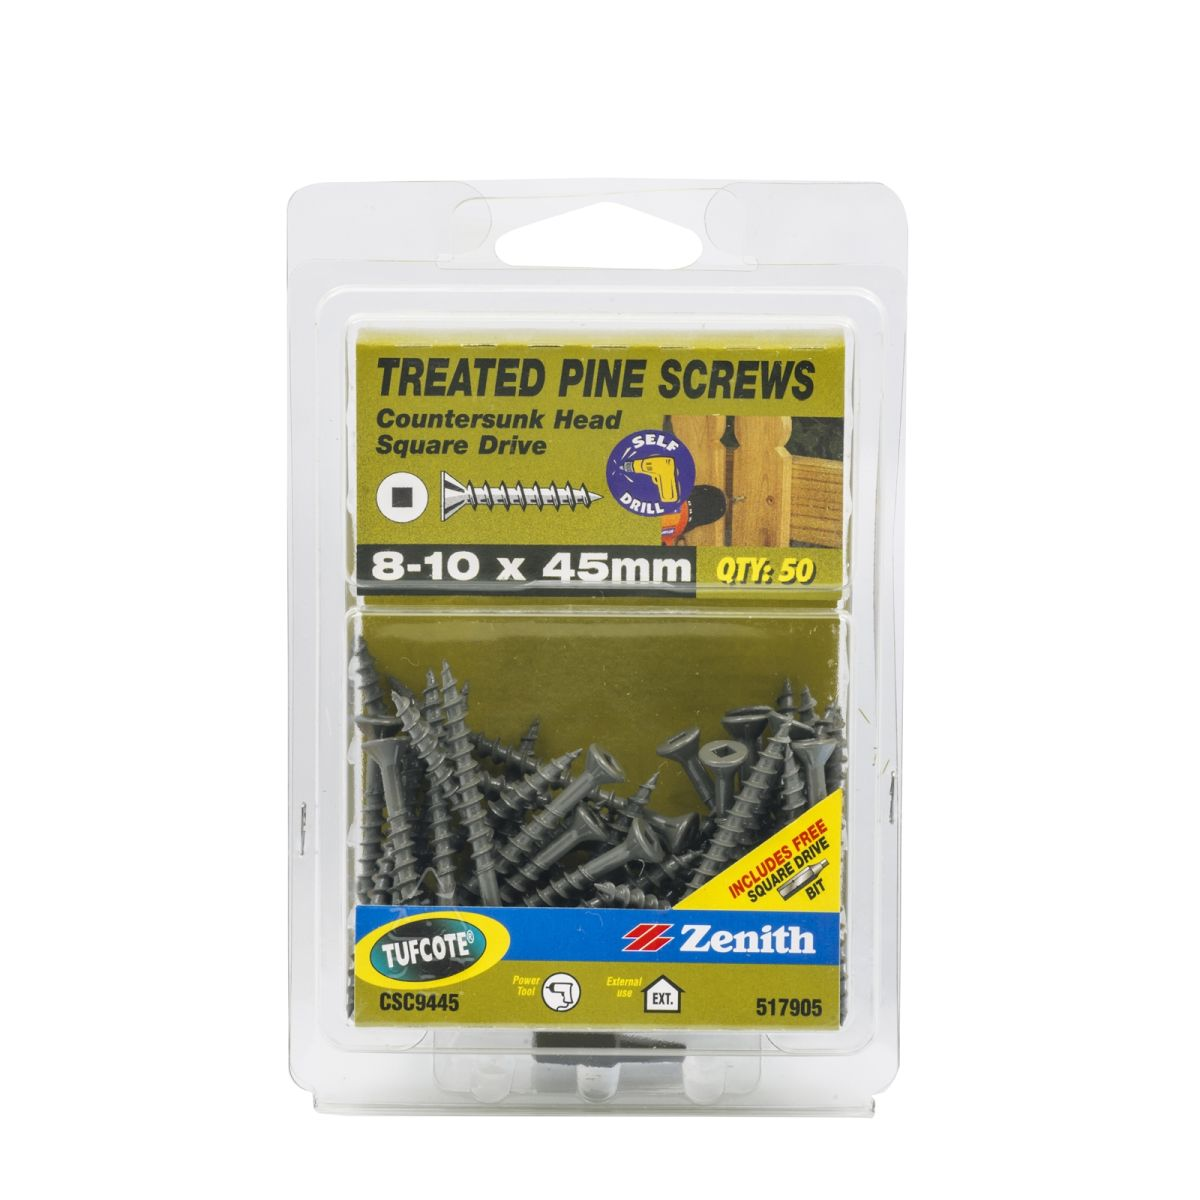 Zenith Treated Pine Screws Tufcote Square Drive